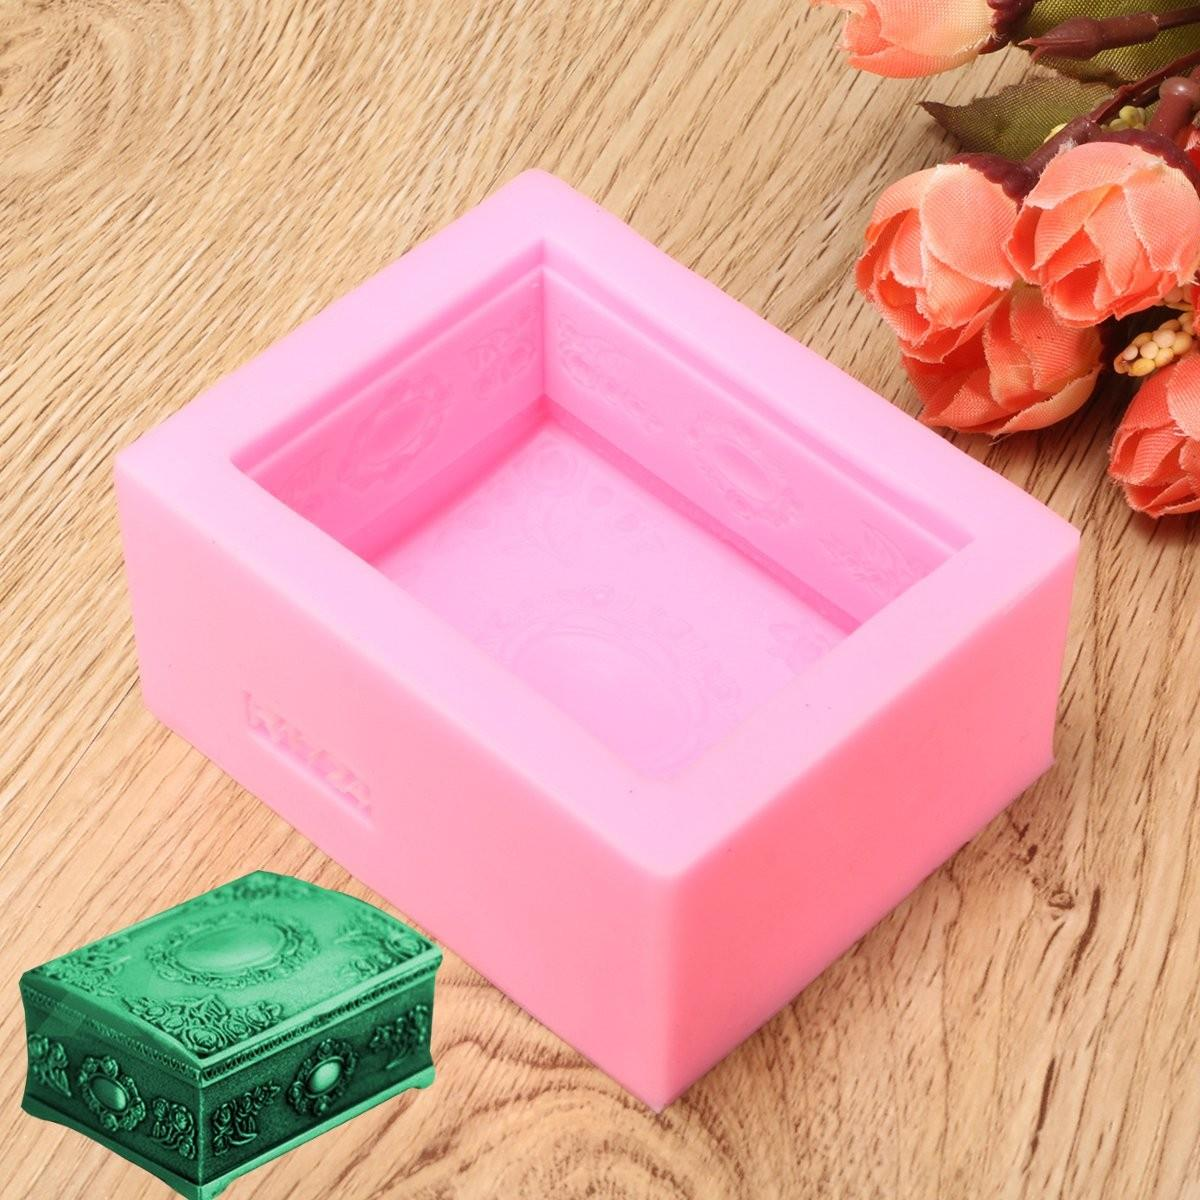 DIY Chocolate Silicone Molds Jewelry Box Soap Making Resin Craft